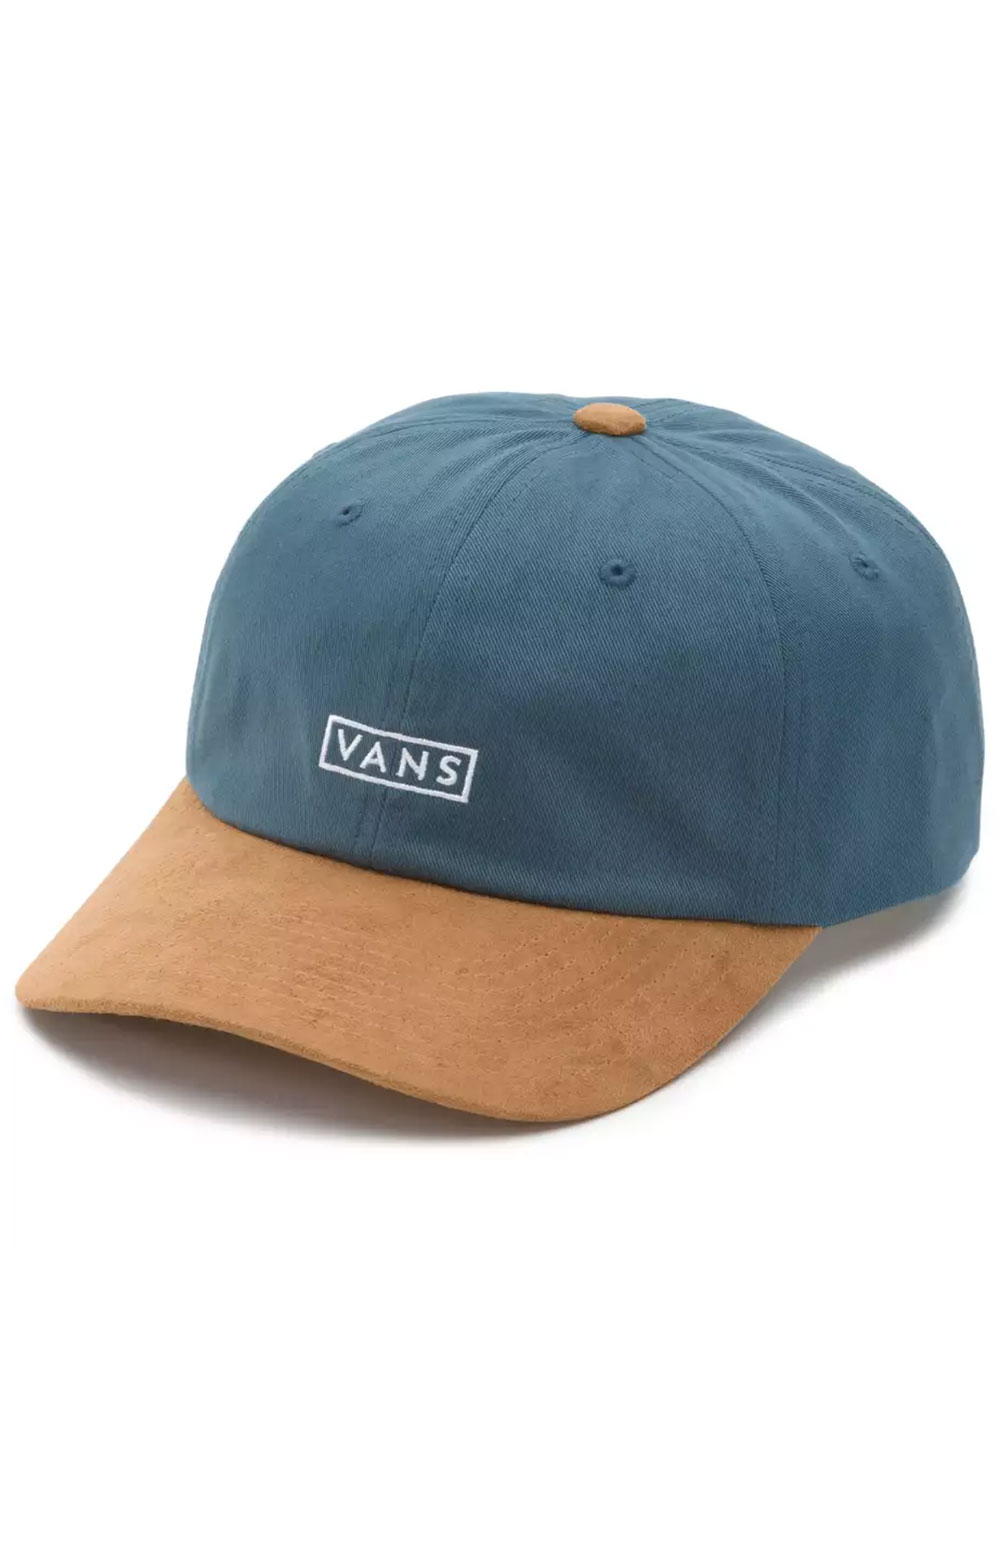 Vans Curved Bill Jockey Hat - Stargazer